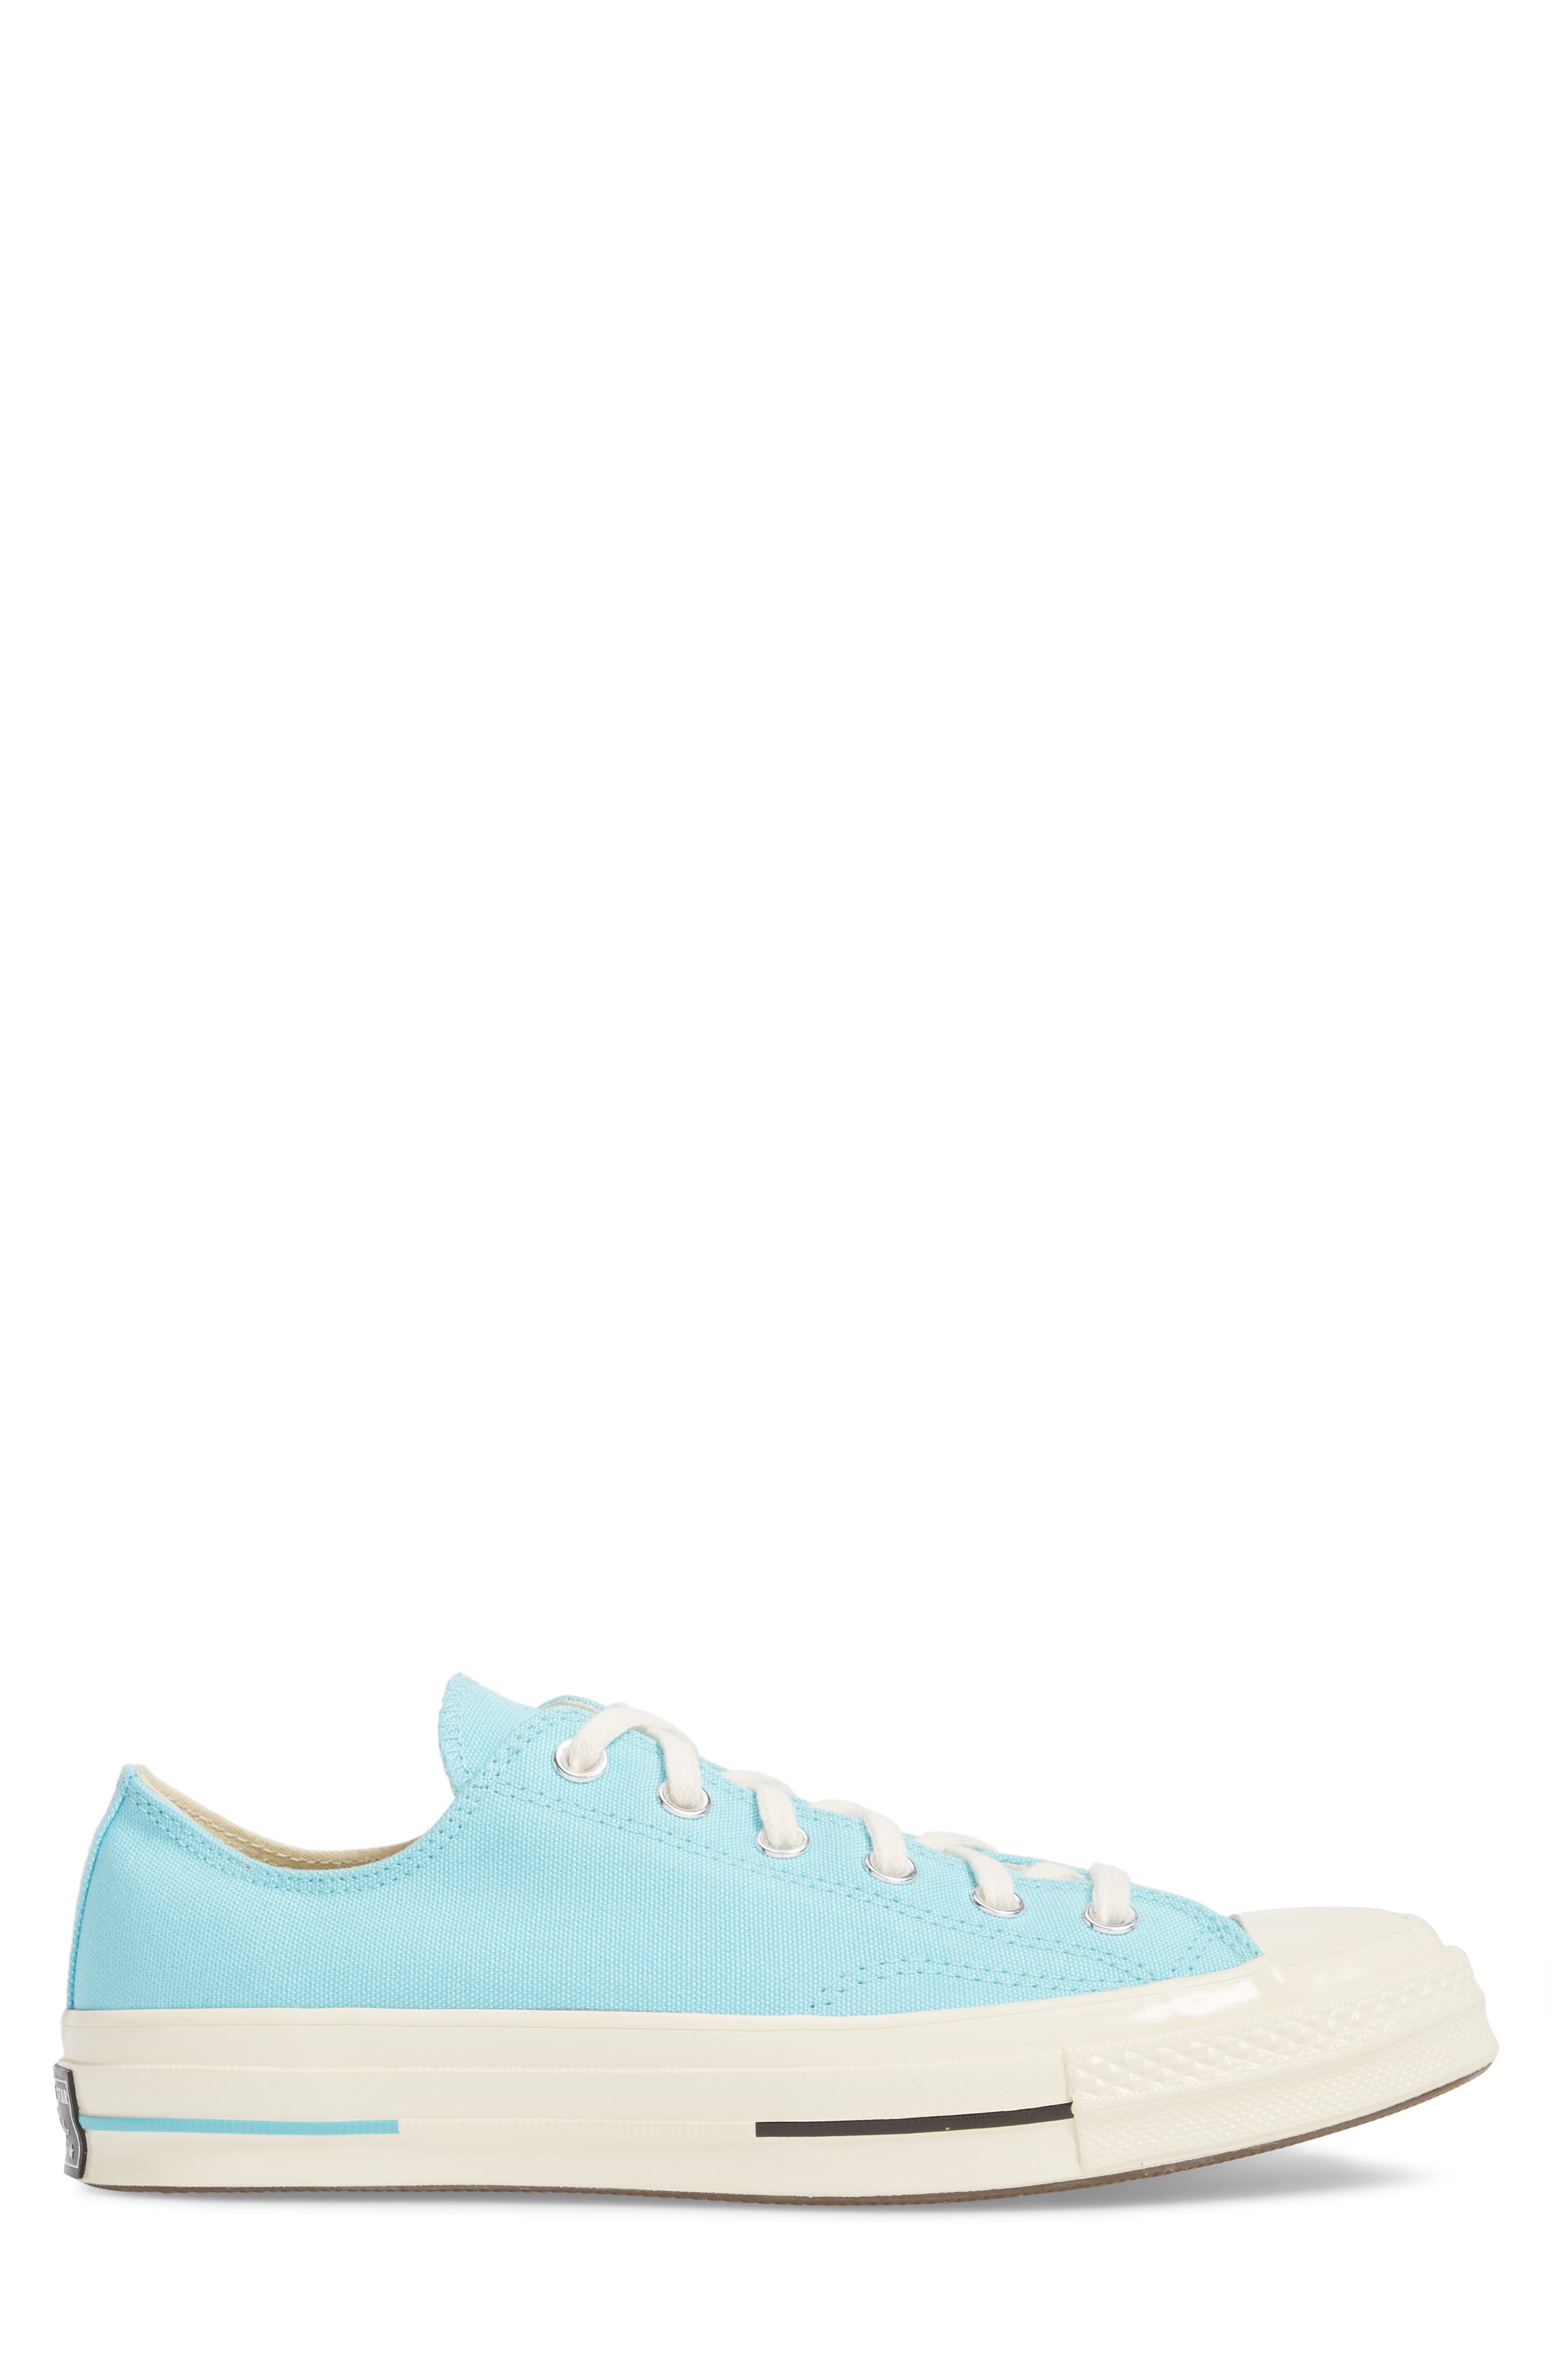 Chuck Taylor<sup>®</sup> All Star<sup>®</sup> 70 Brights Low Top Sneaker,                             Alternate thumbnail 3, color,                             Beached Aqua